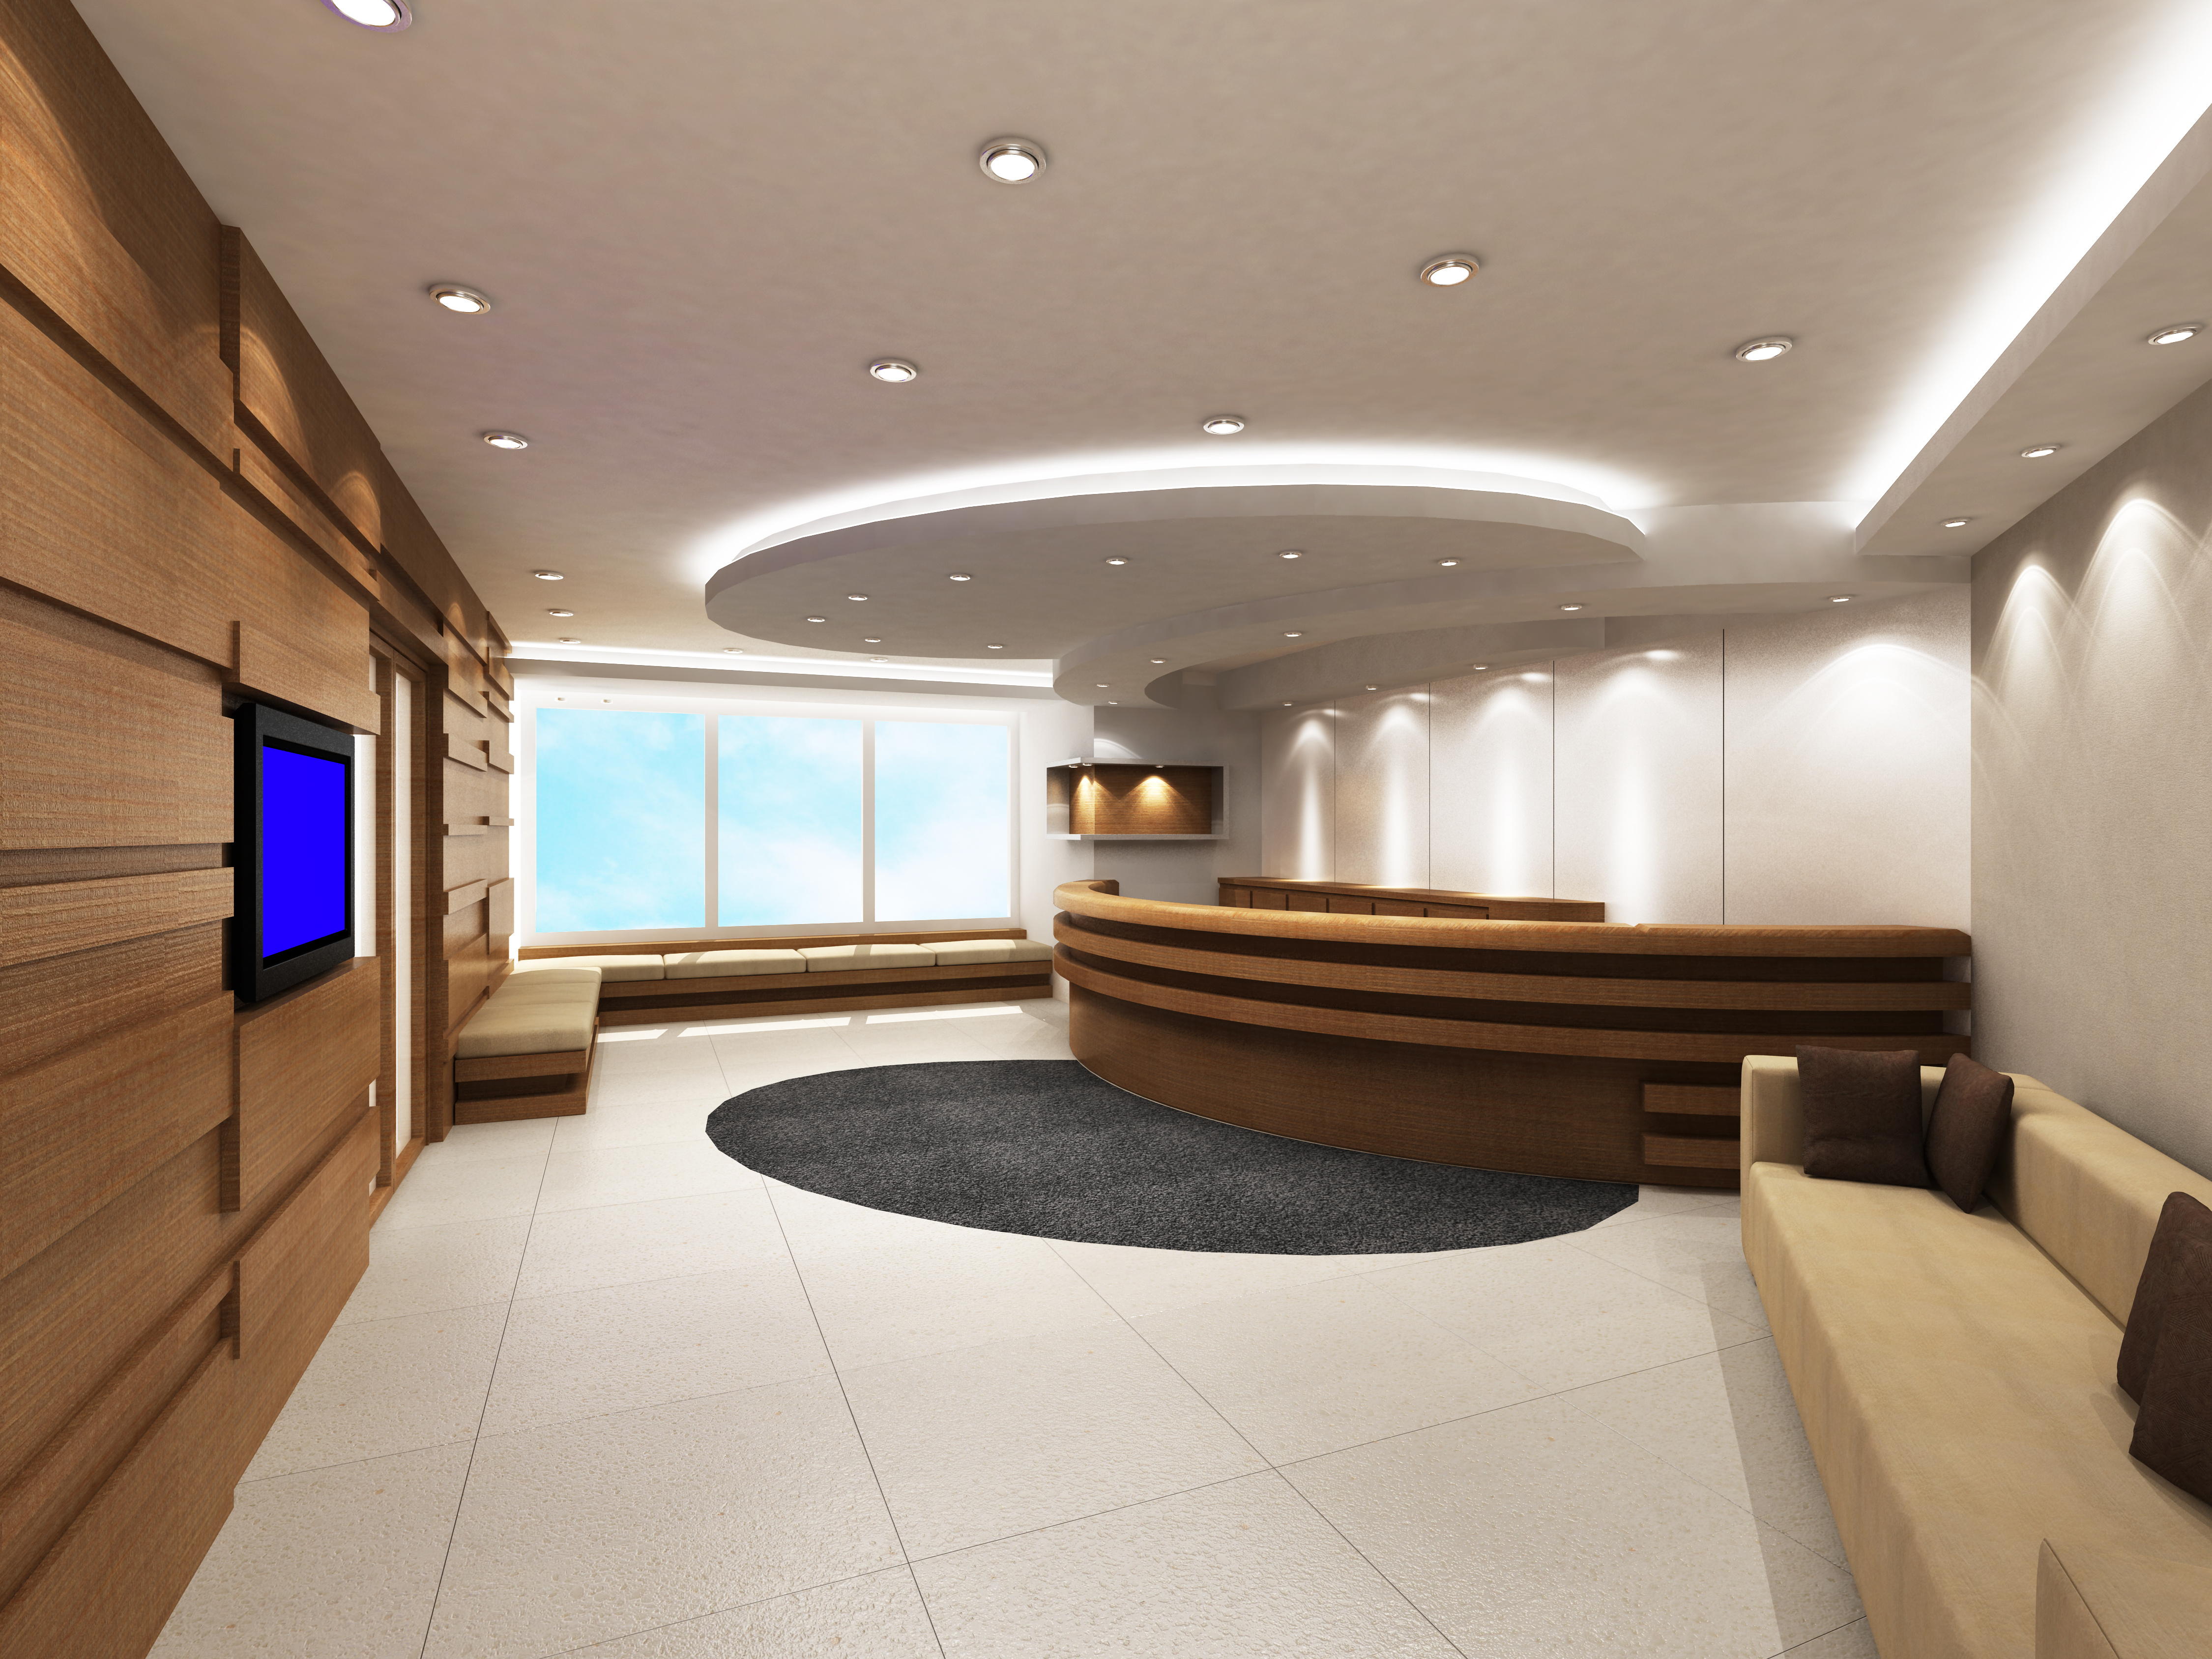 Pot lighting in ceiling of reception area||||